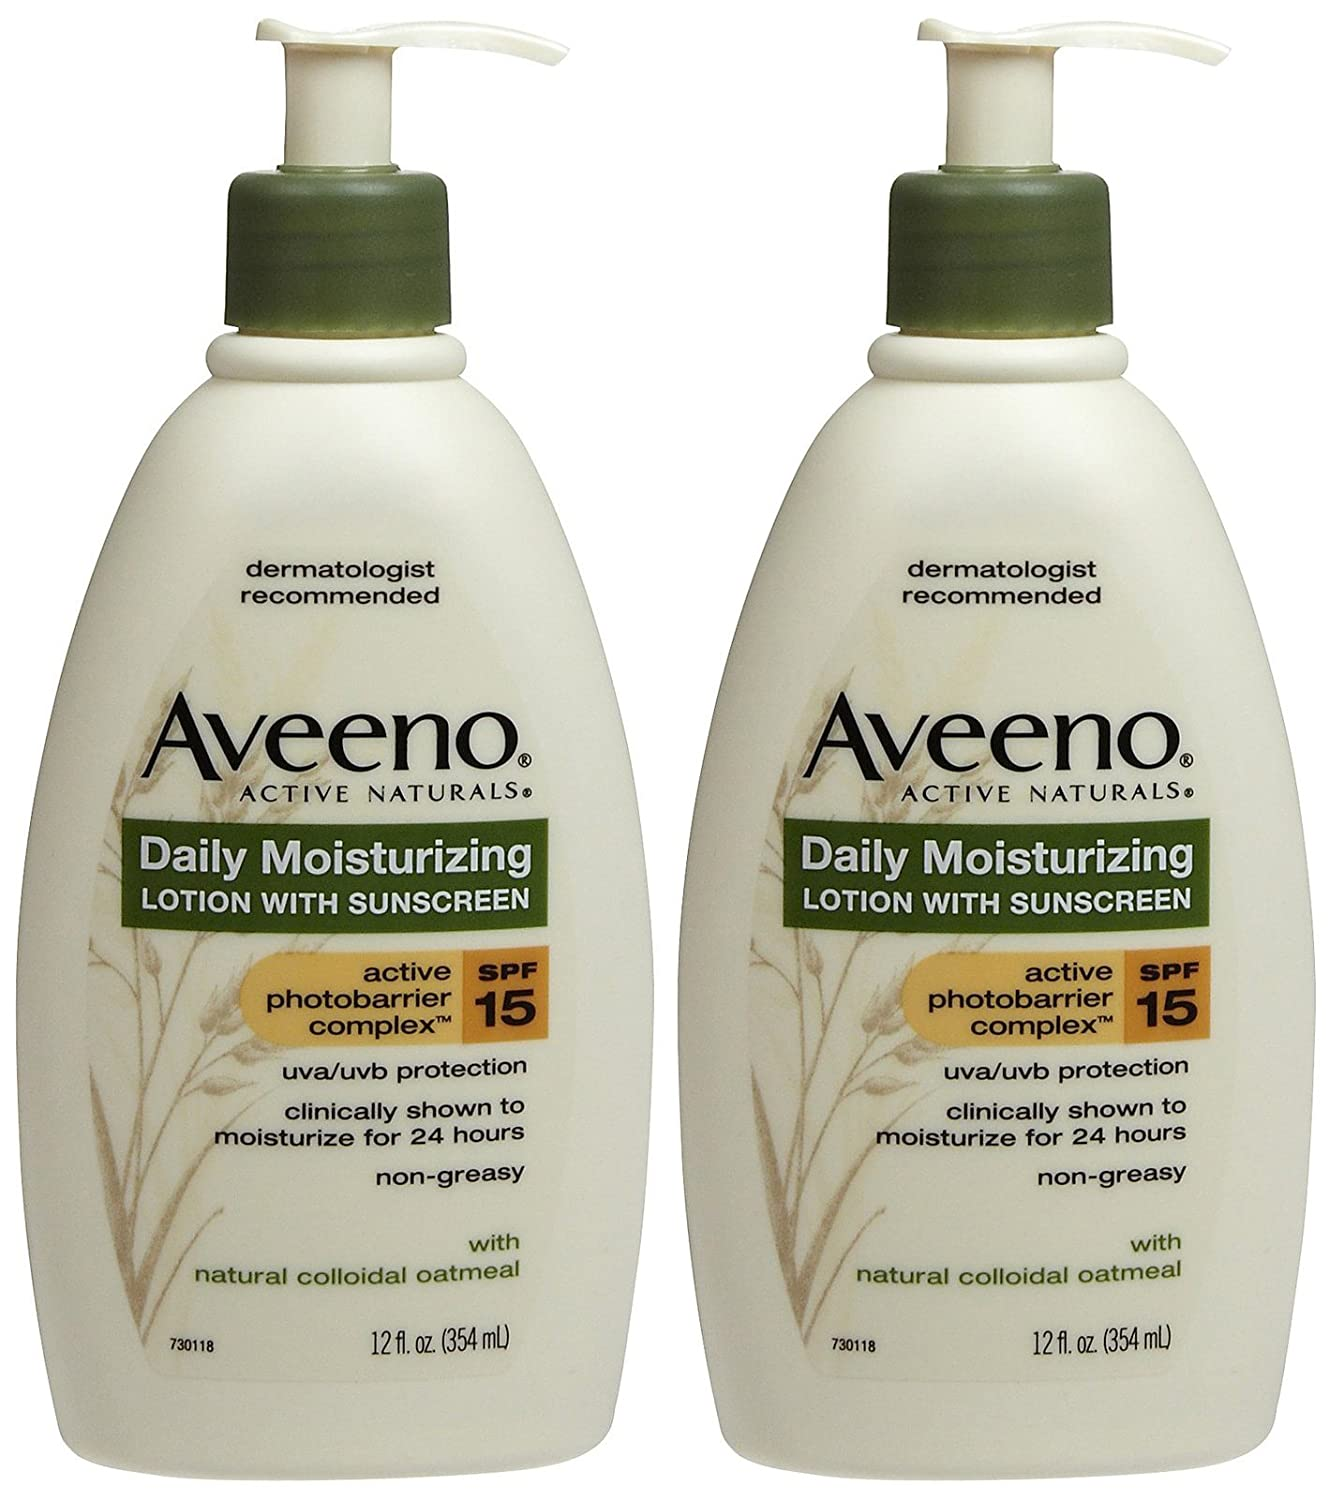 Aveeno Daily Moisturizing Lotion with Sunscreen, SPF 15